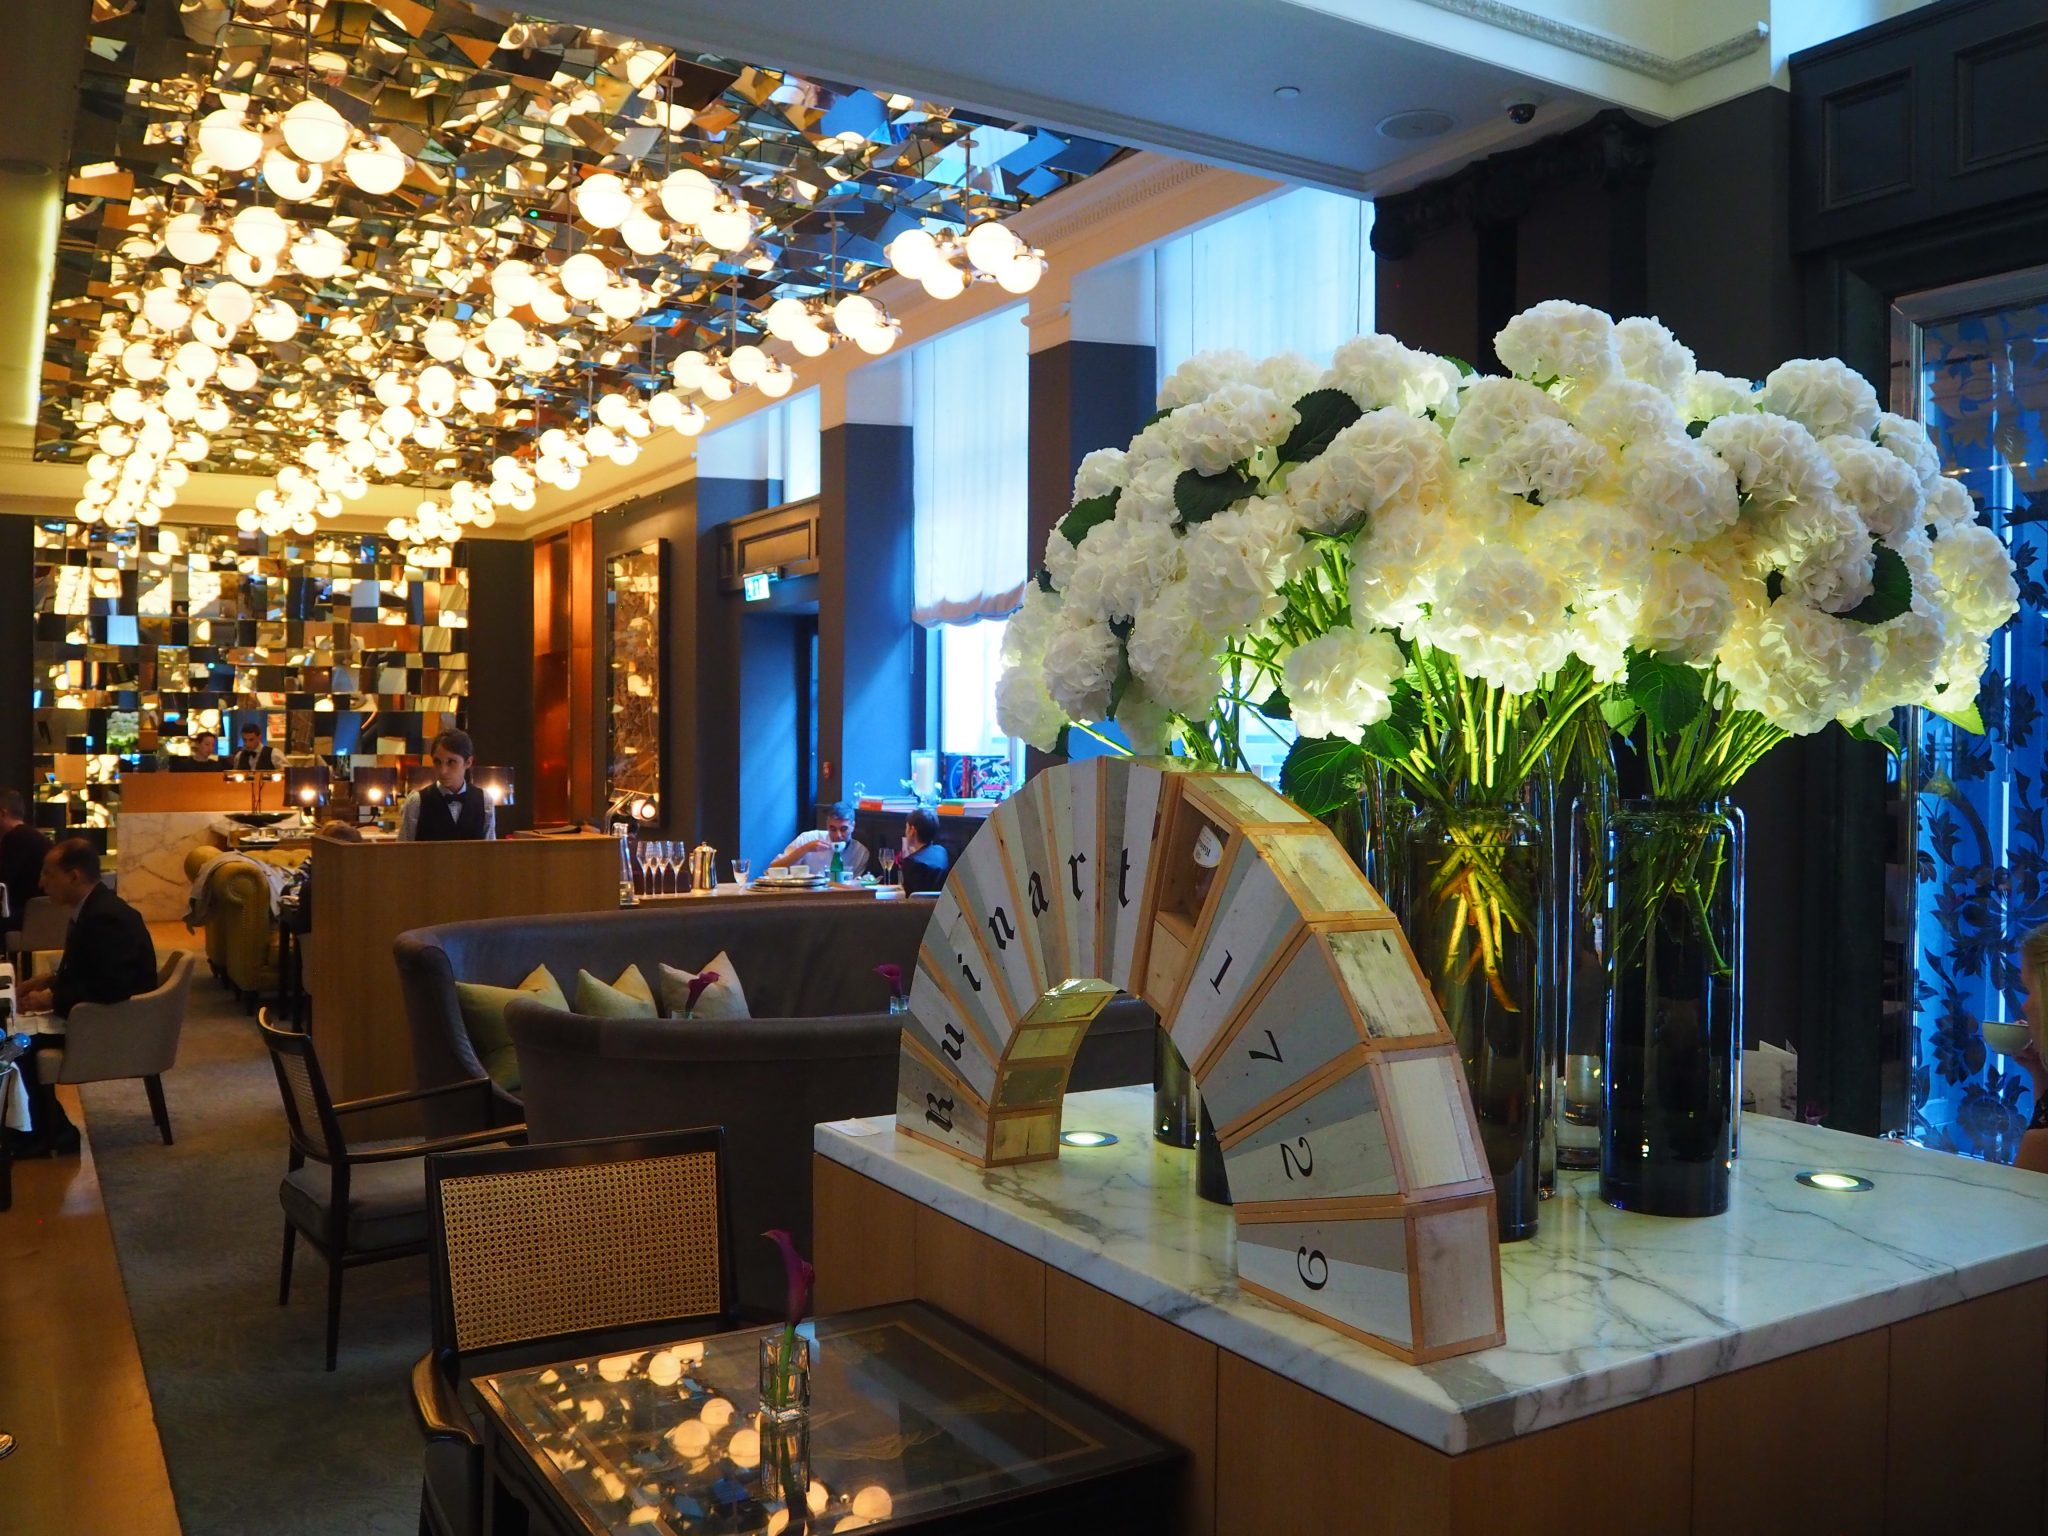 The Mirror Room at the Rosewood London